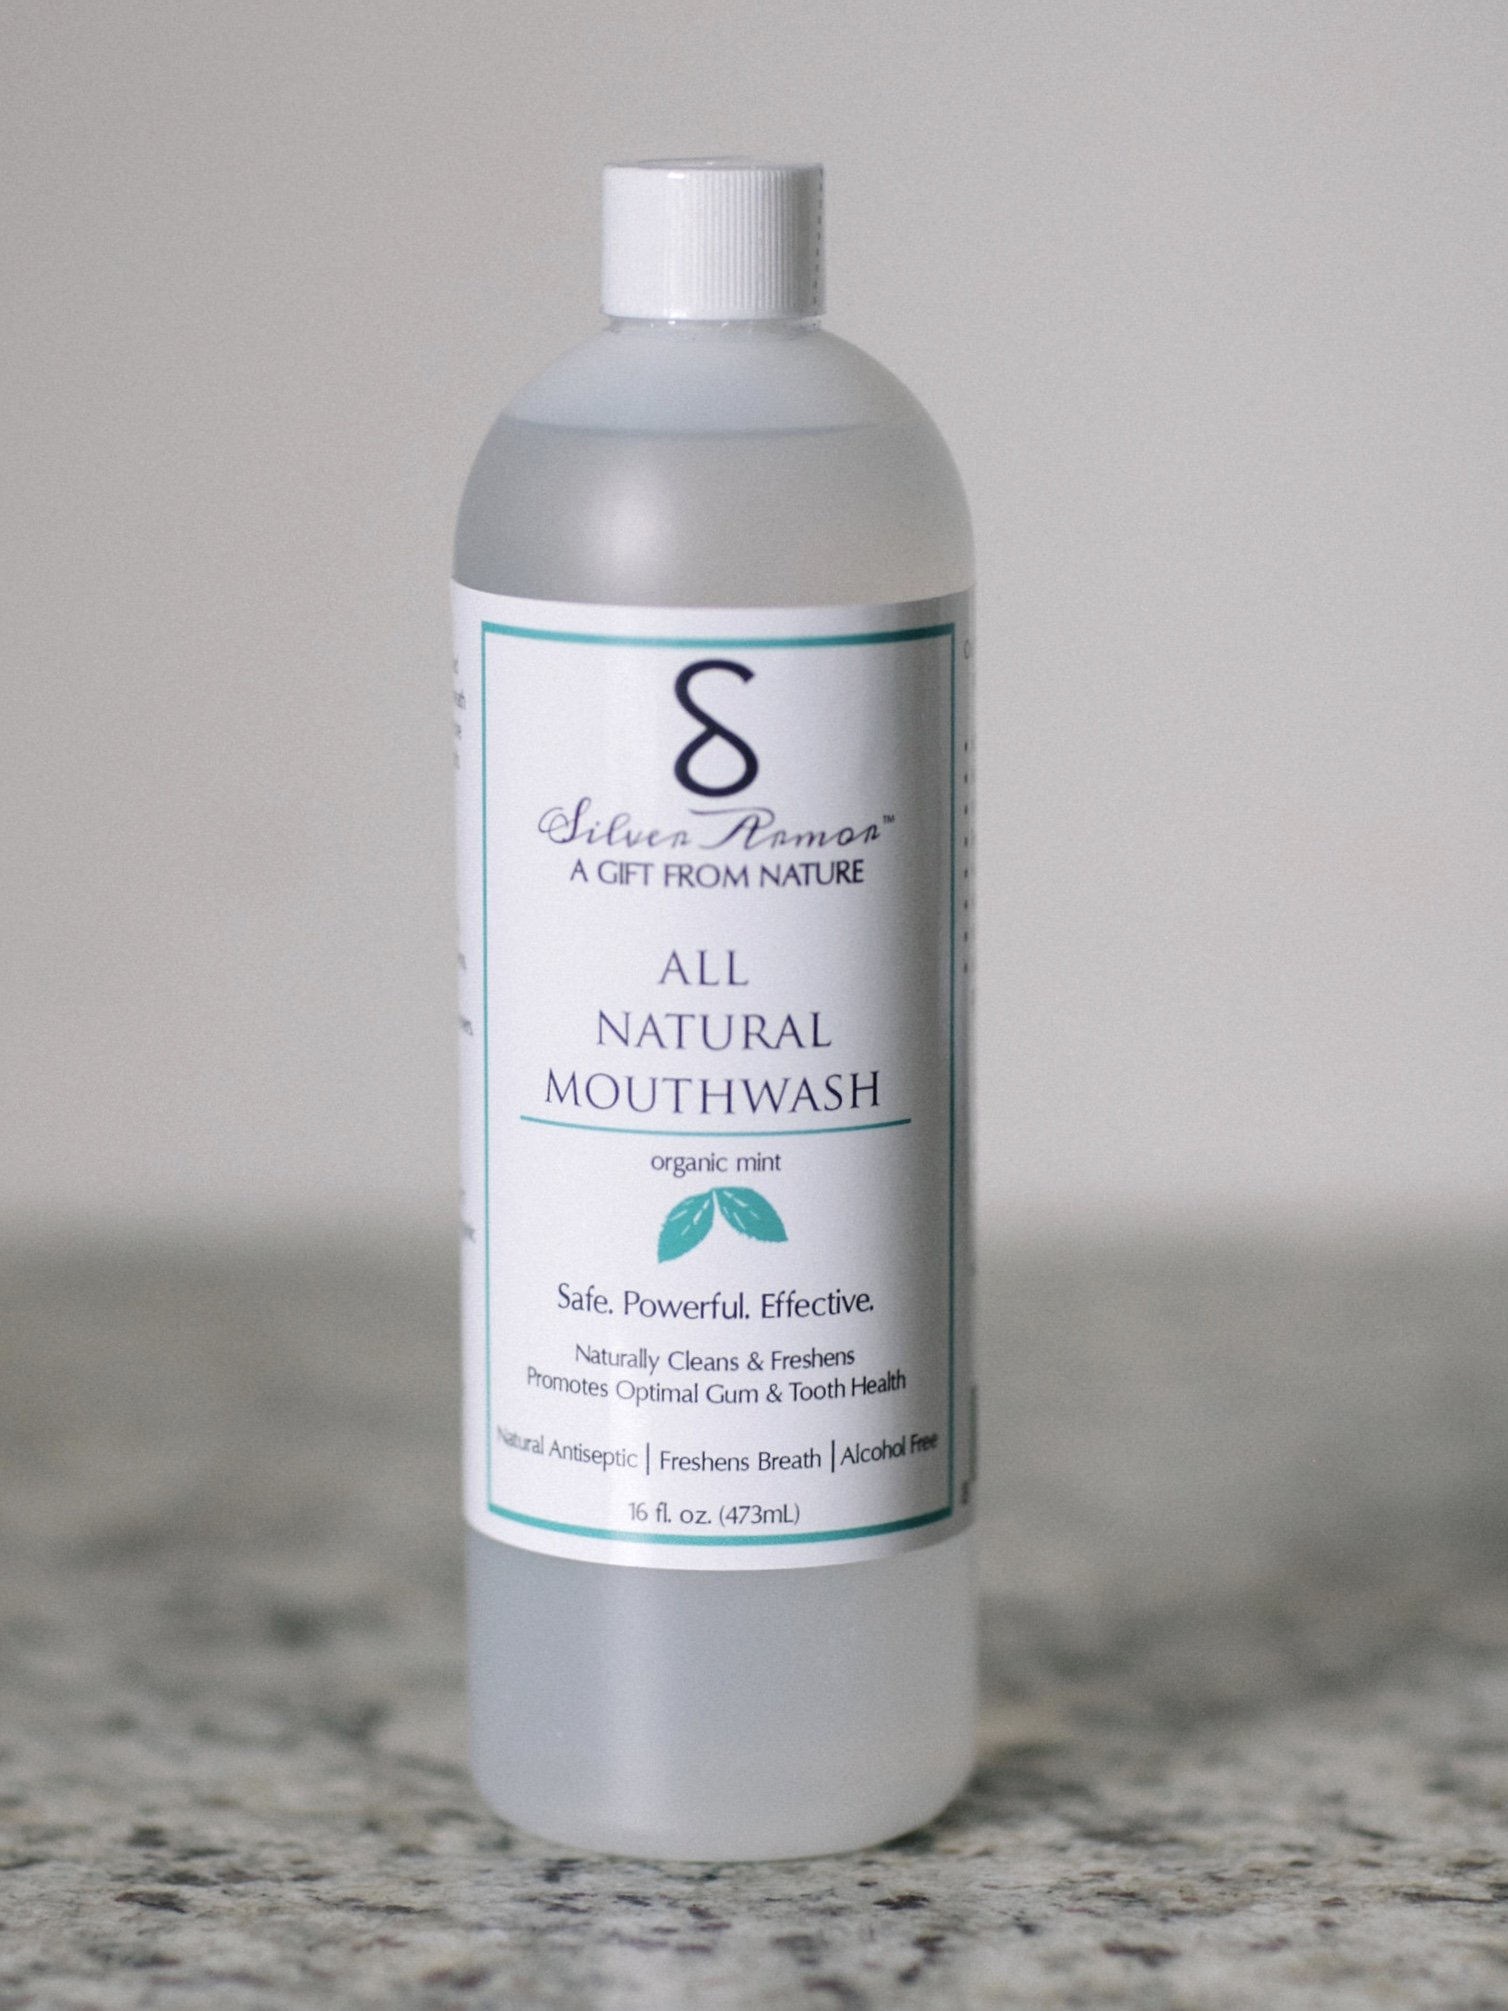 Silver Armor All Natural Mouthwash